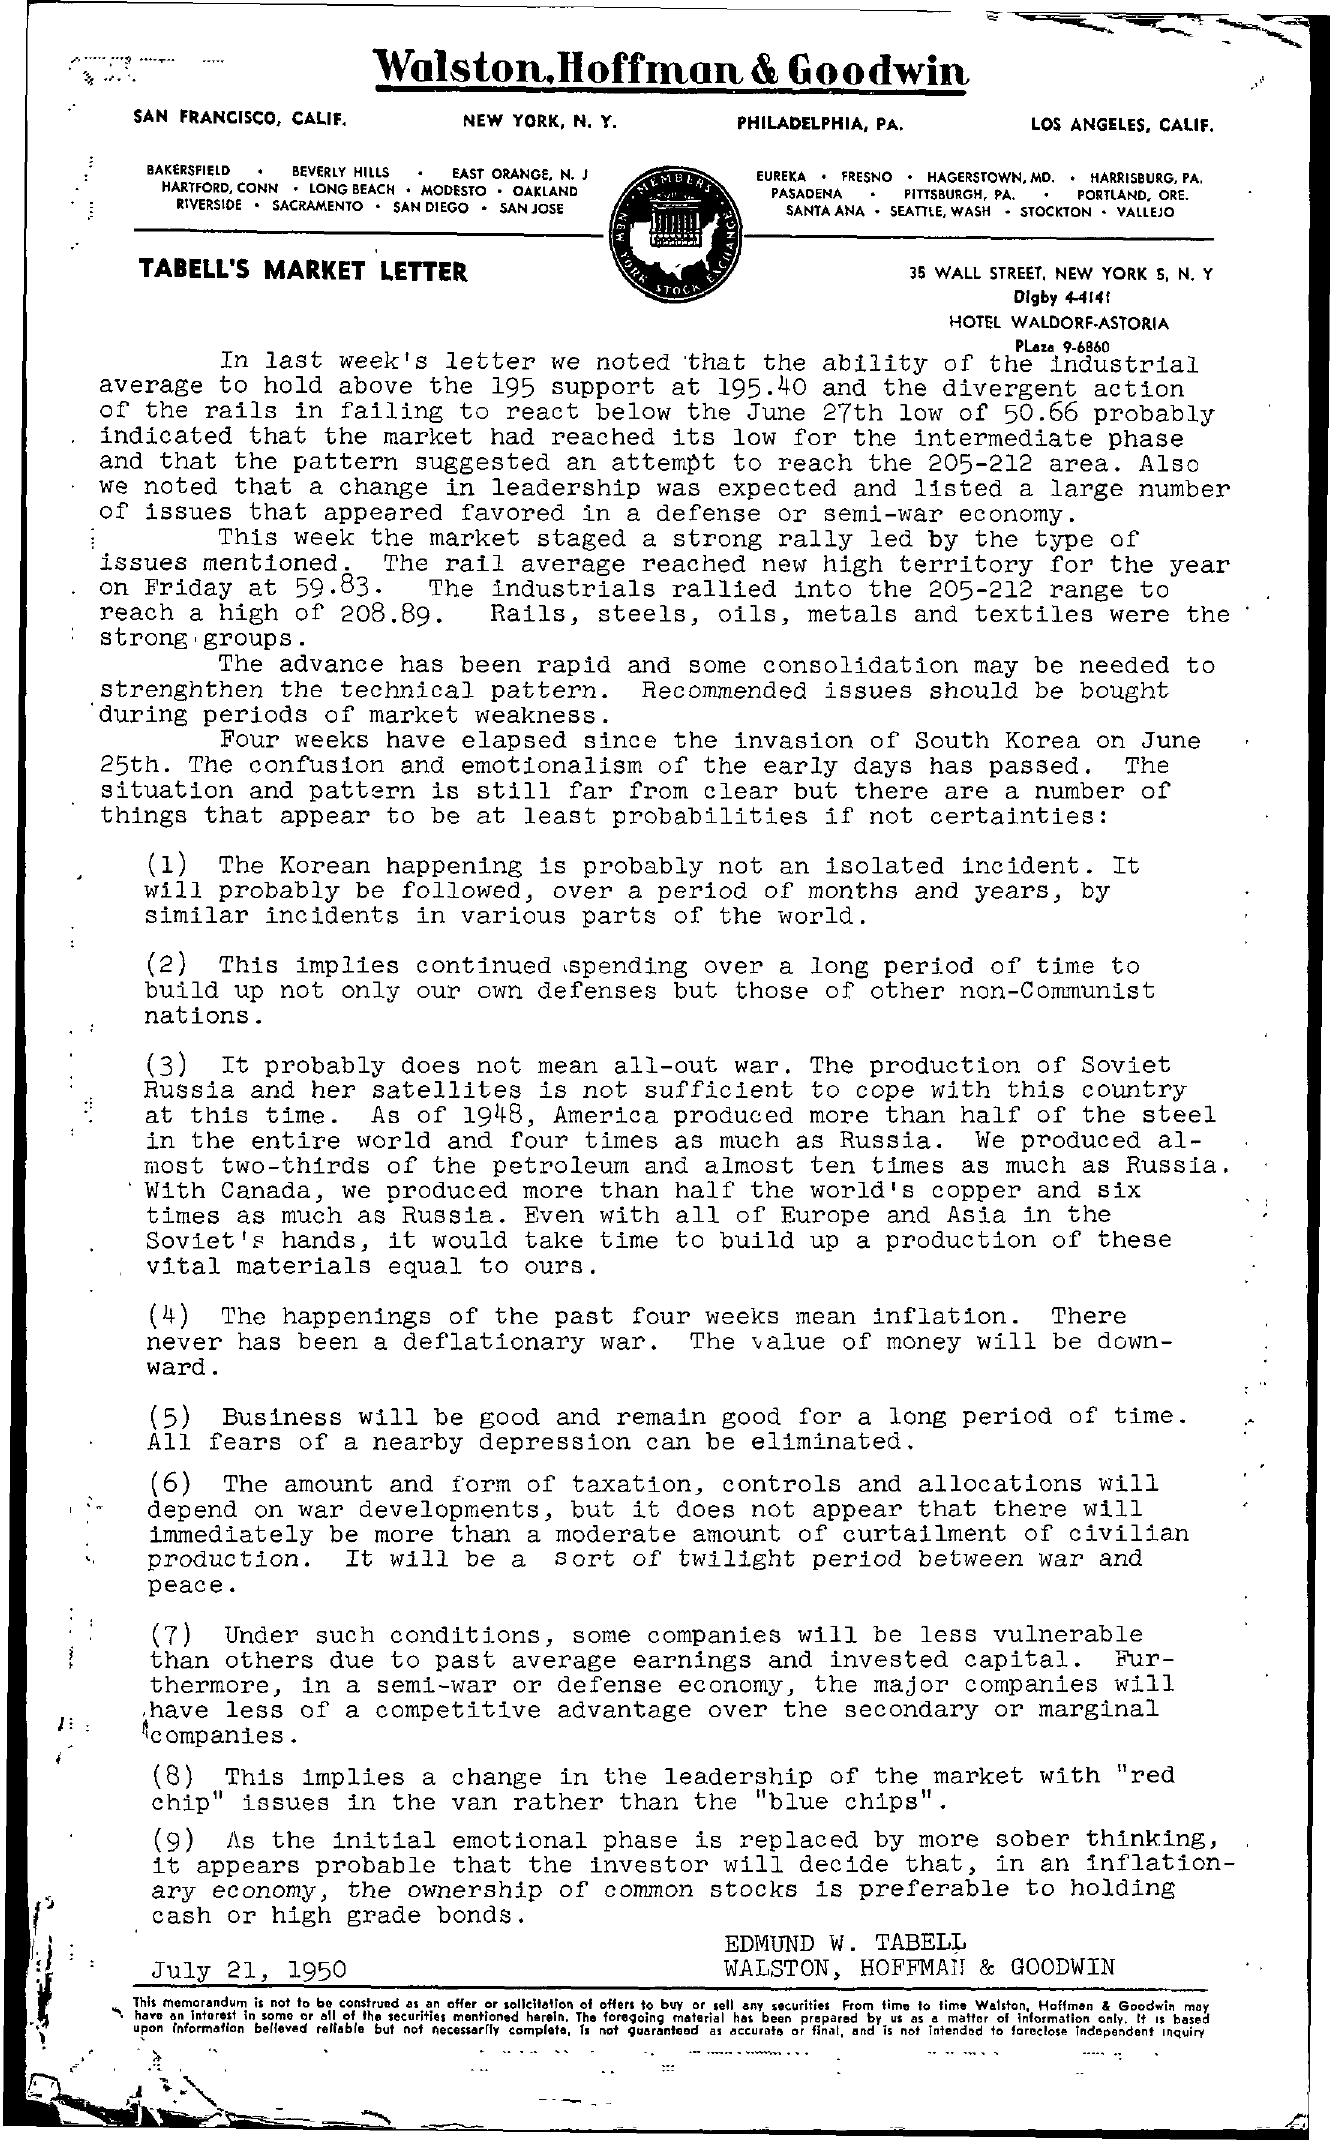 Tabell's Market Letter - July 21, 1950